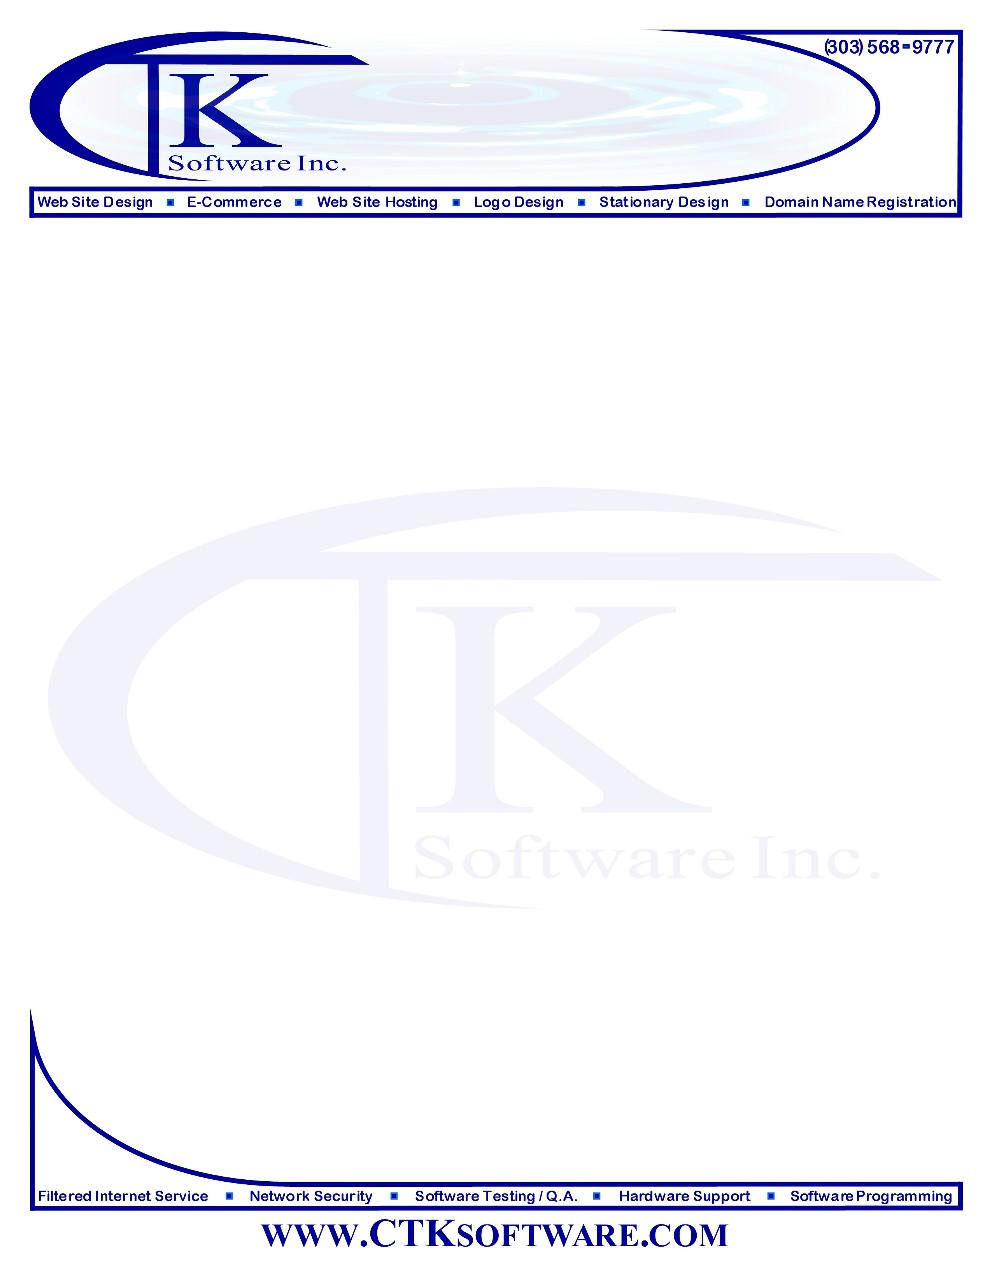 Free business letterhead templates for word hospital admission letter pad software madosahkotupakkaco ctk letterhead letter pad software free business letterhead templates for word free business letterhead templates for spiritdancerdesigns Image collections